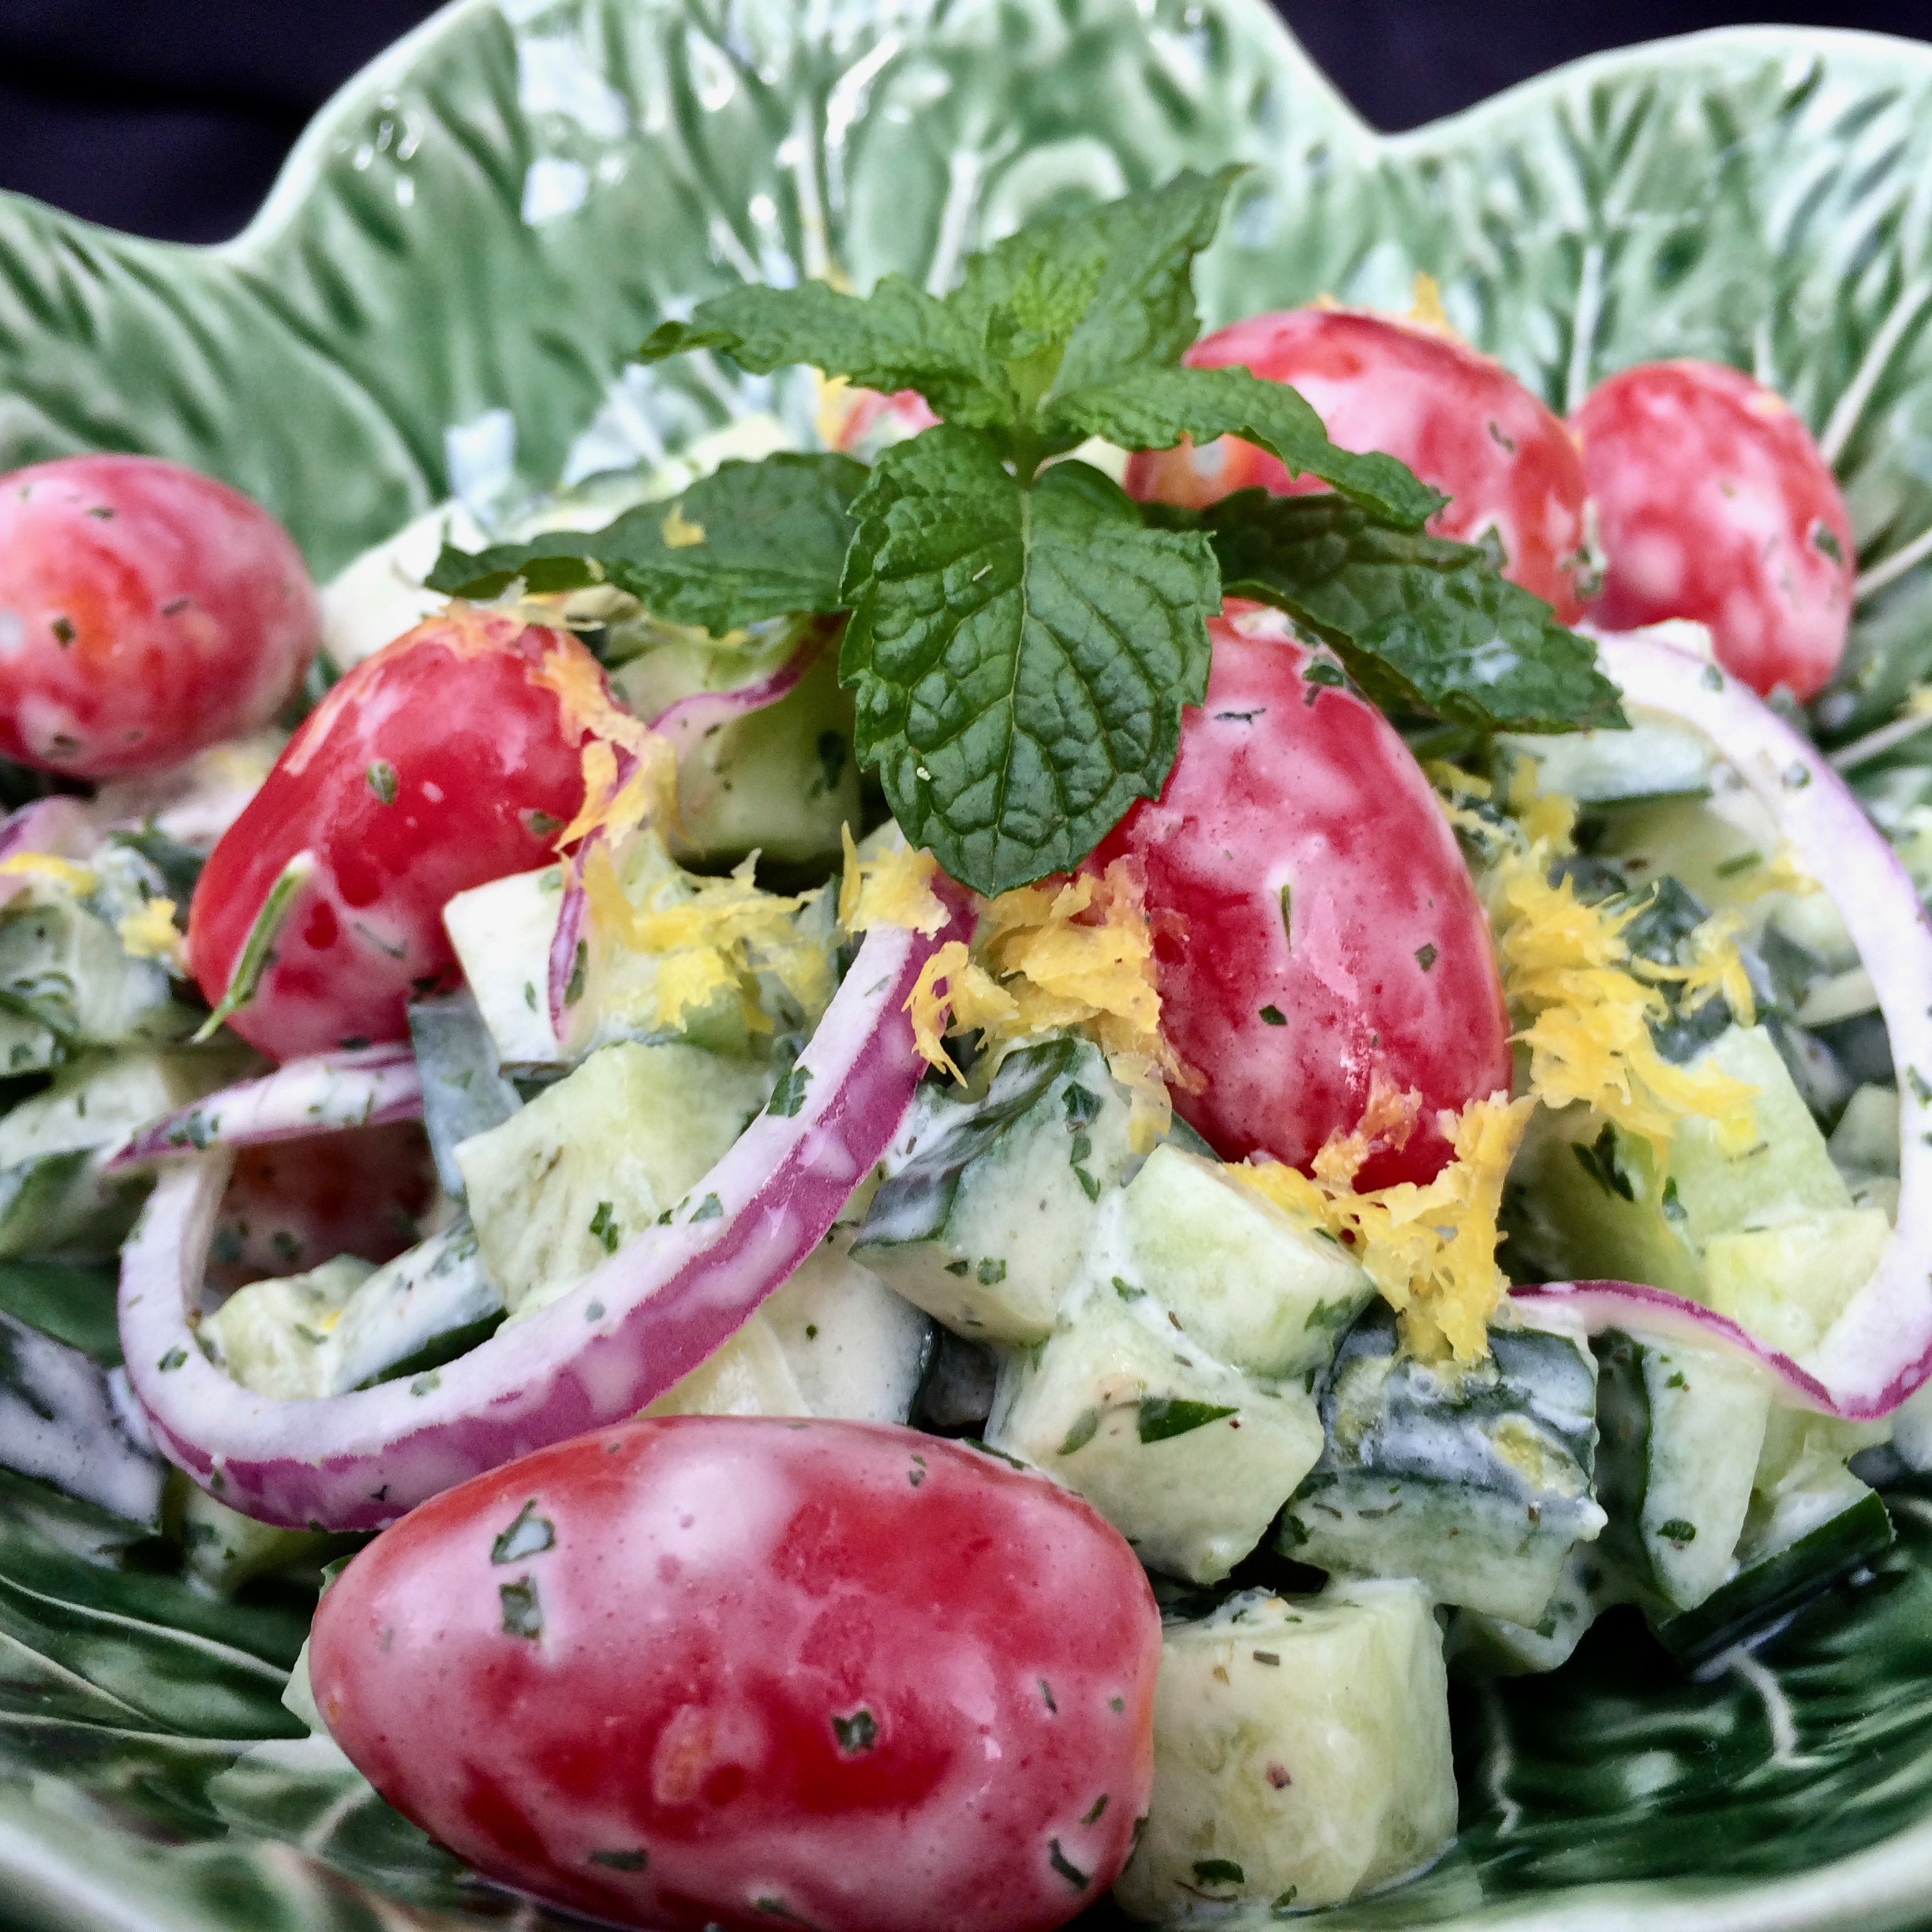 """""""Lively and refreshing, this cucumber salad has beautiful, fresh herbs and lots of crunch,"""" says Bibi. """"Try it this summer when your garden is bursting with cucumbers, and your lettuce has said goodbye. You can toss it with some romaine, if you have some, or just simply enjoy the simplicity."""""""